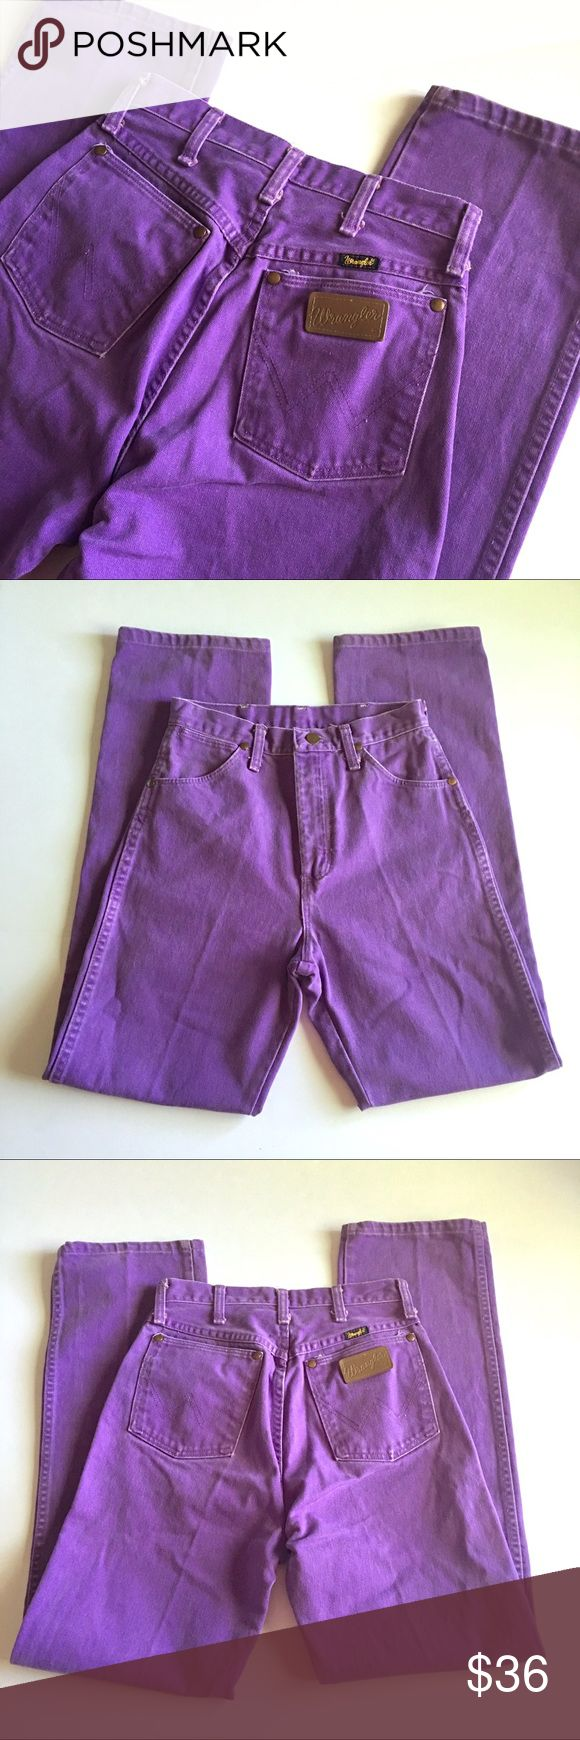 "❤ Wrangler Purple Western Jeans D3 Wrangler high-waisted purple western Denim jeans // tag says Sz 7 x 36. See measurements for best idea on Fit. // 100% cotton // straight leg // minor fade // minor wear, but it didn't photograph due to color // not my size. Can't model // 13"" waist laid flat // high waisted 12"" rise // 32"" inseam // 22"" hips laid flat // non-smoking home // 5.5.36.852 1p11.5o // Bundle discounts! {cowgirl, cowboy, horses, rodeo, western} Wrangler Jeans Straight Leg"